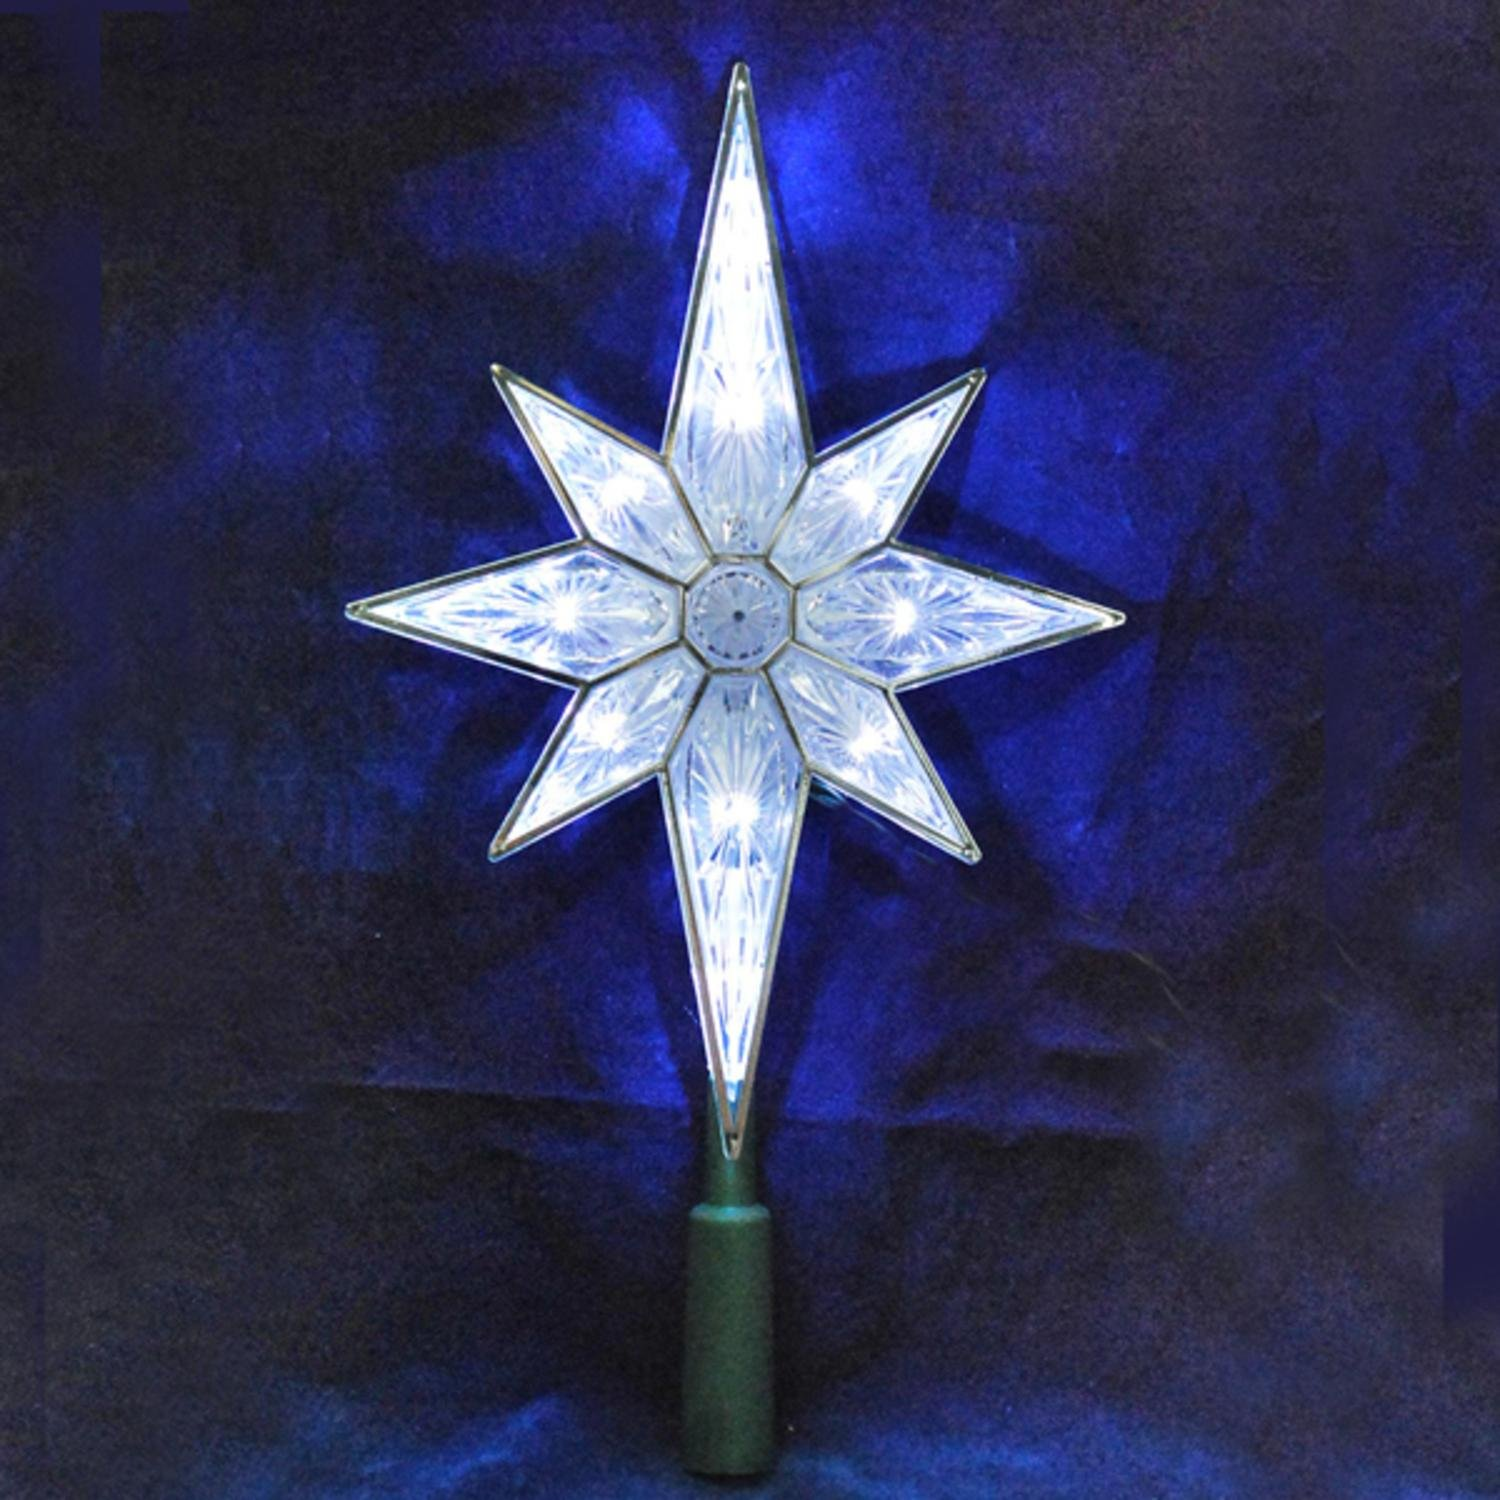 Star Of Bethlehem Outdoor Light Amazon ksa 105 lighted led 8 point star christmas tree topper amazon ksa 105 lighted led 8 point star christmas tree topper pure white lights home kitchen workwithnaturefo